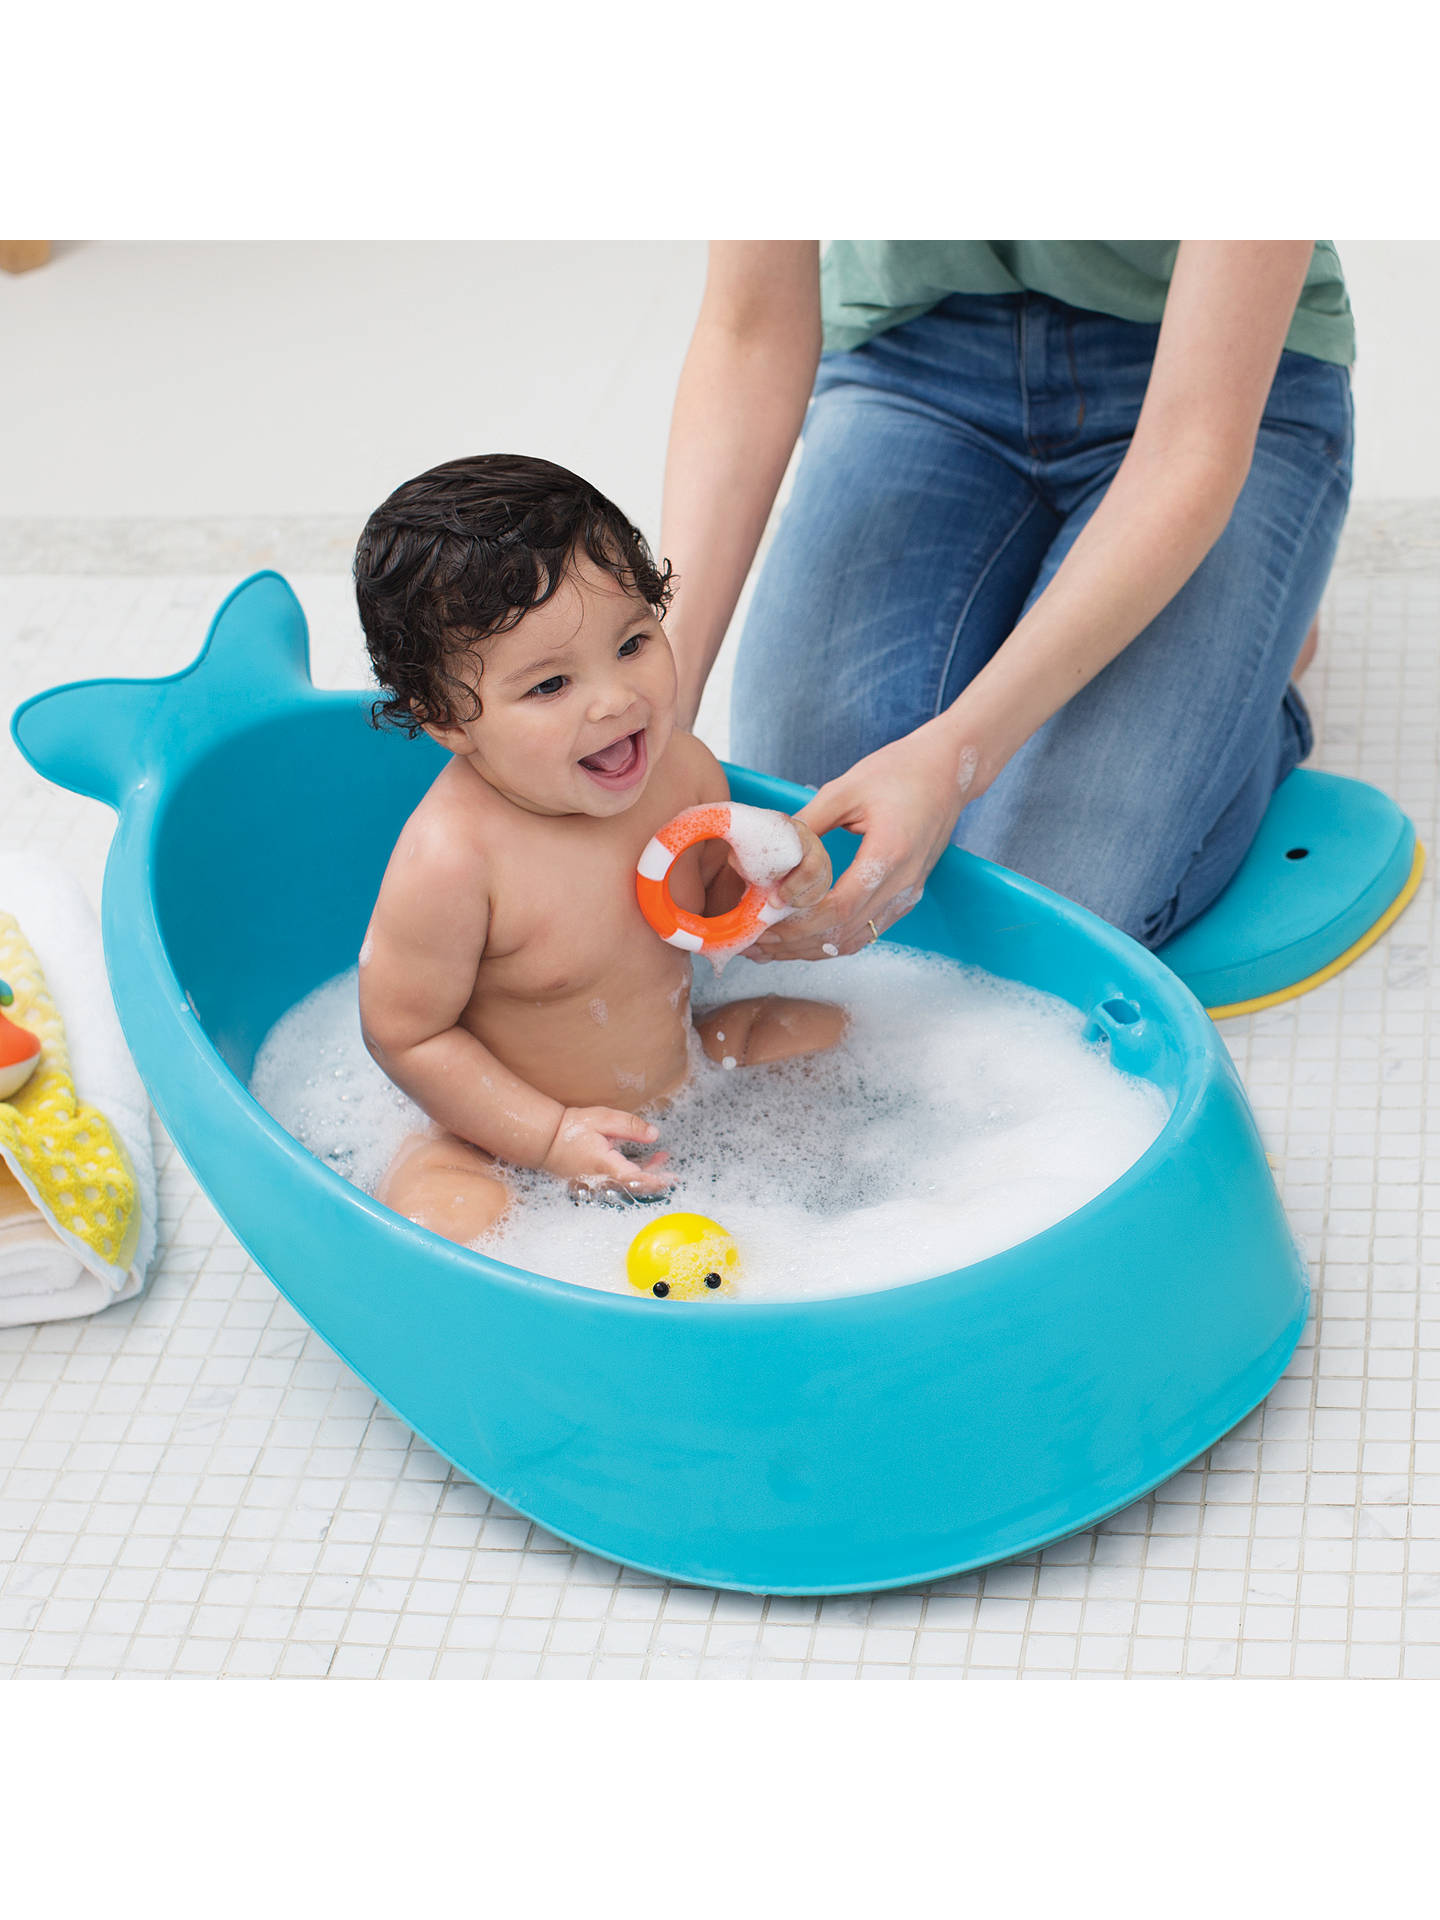 Buy Skip Hop Moby 3 Stage Baby Bath Tub, Blue Online at johnlewis.com